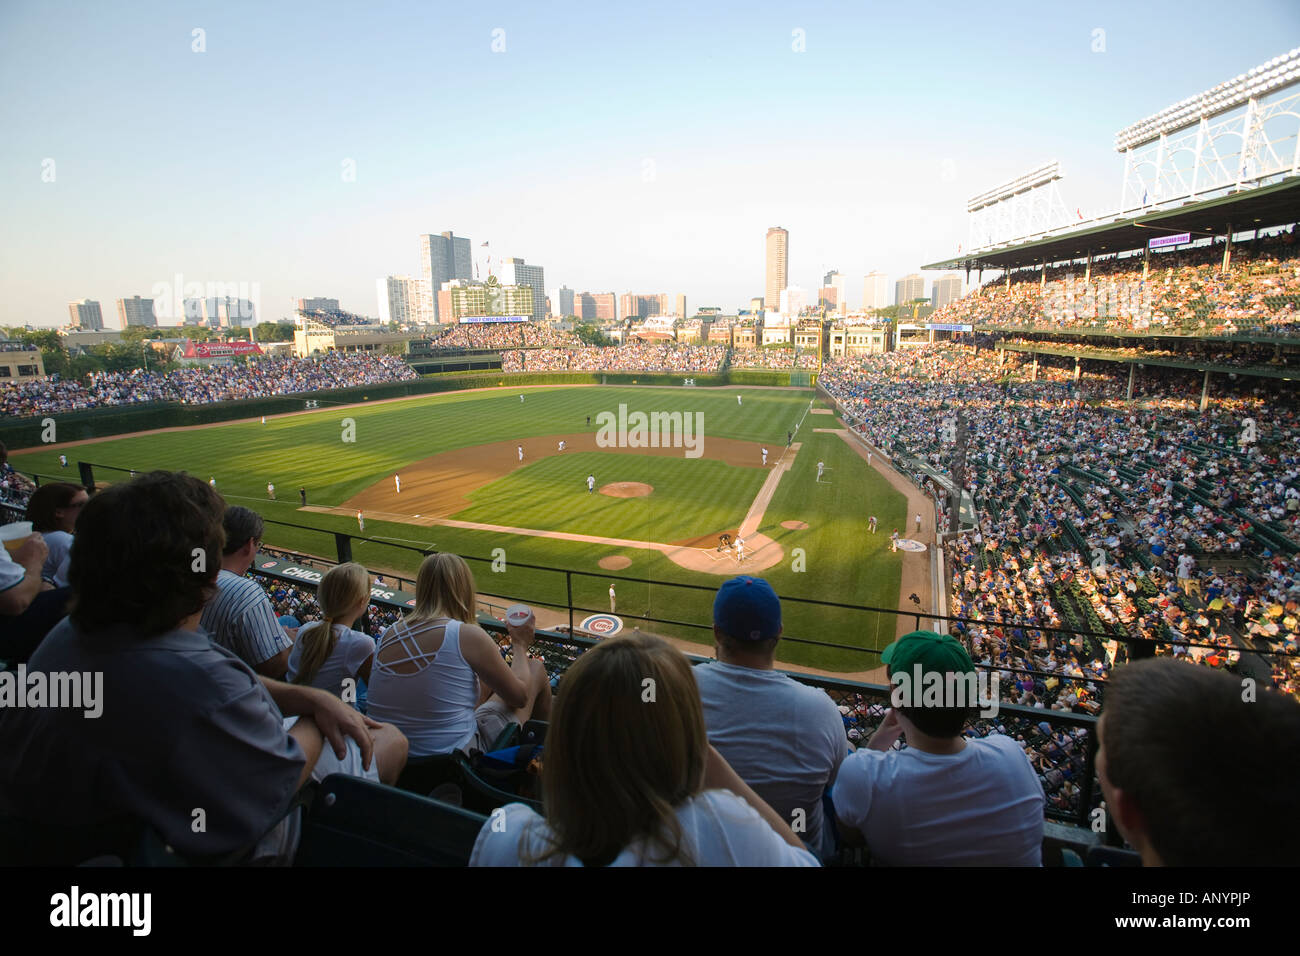 ILLINOIS Chicago Crowd in stands at Wrigley Field watching night game stadium for Chicago Cubs professional baseball - Stock Image